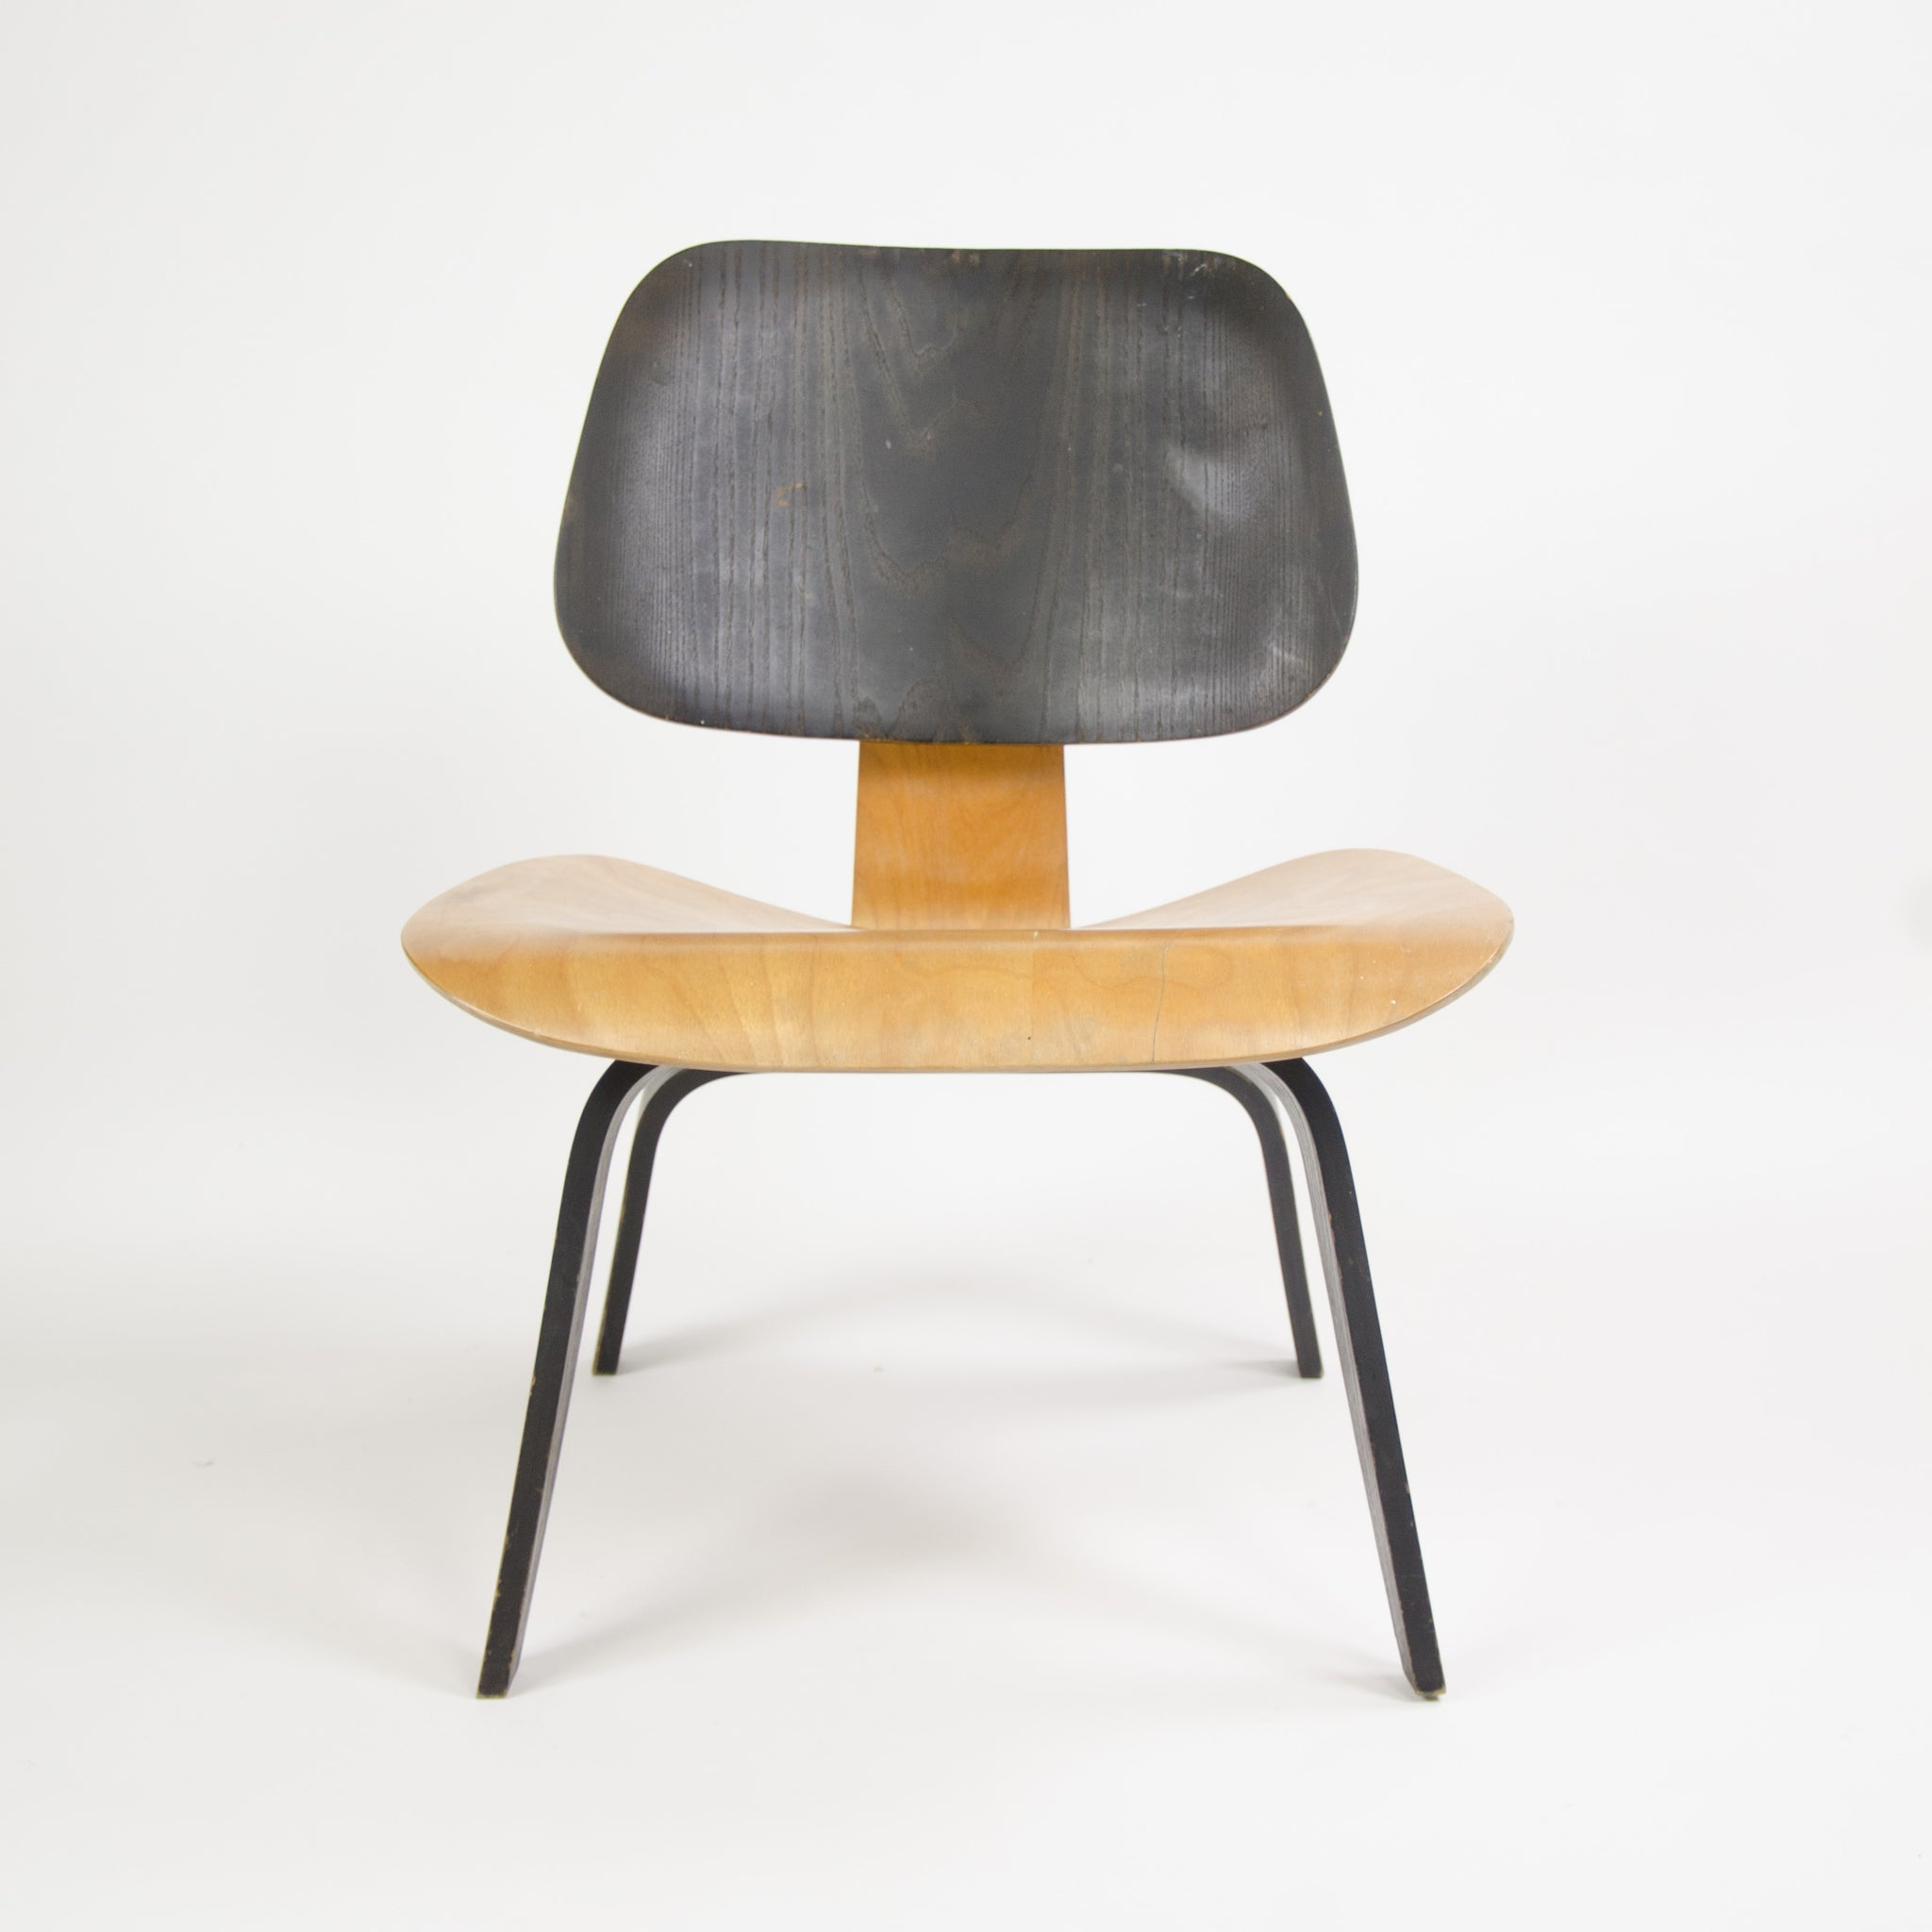 SOLD Eames Evans Herman Miller 1947 LCW Plywood Lounge Chair Original Museum Quality